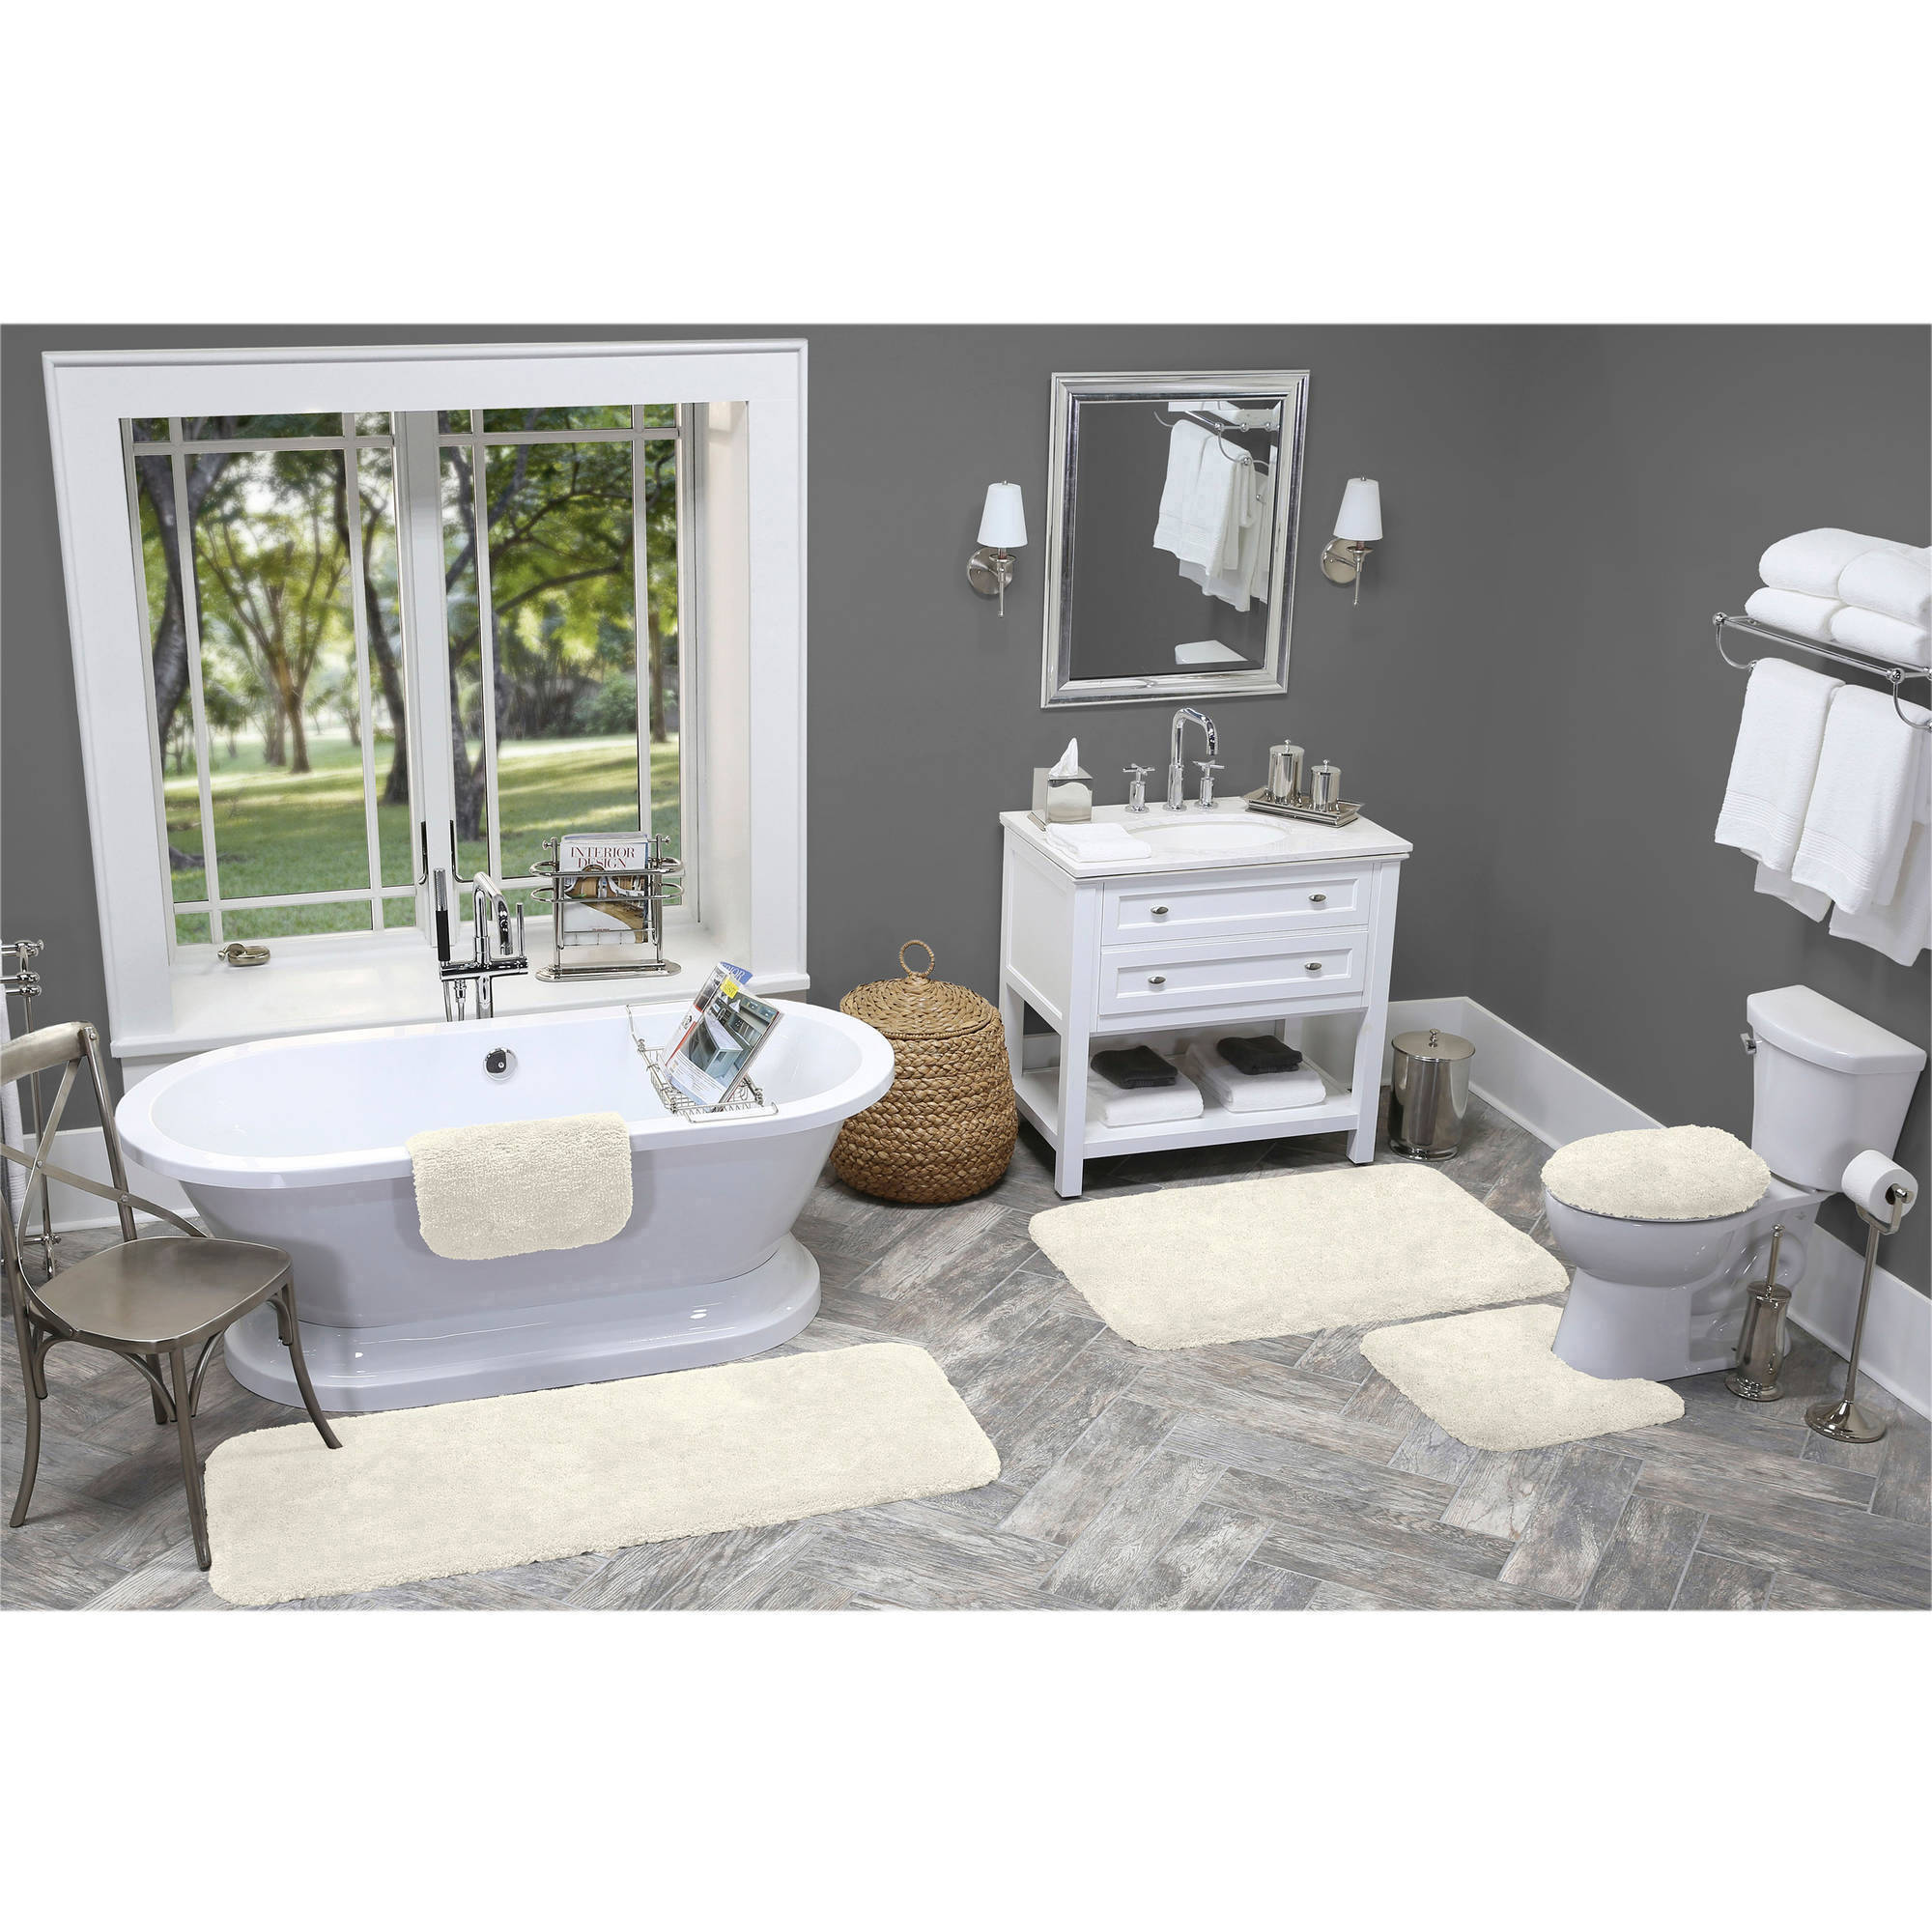 Made Here Bath Rug Collection, Contour